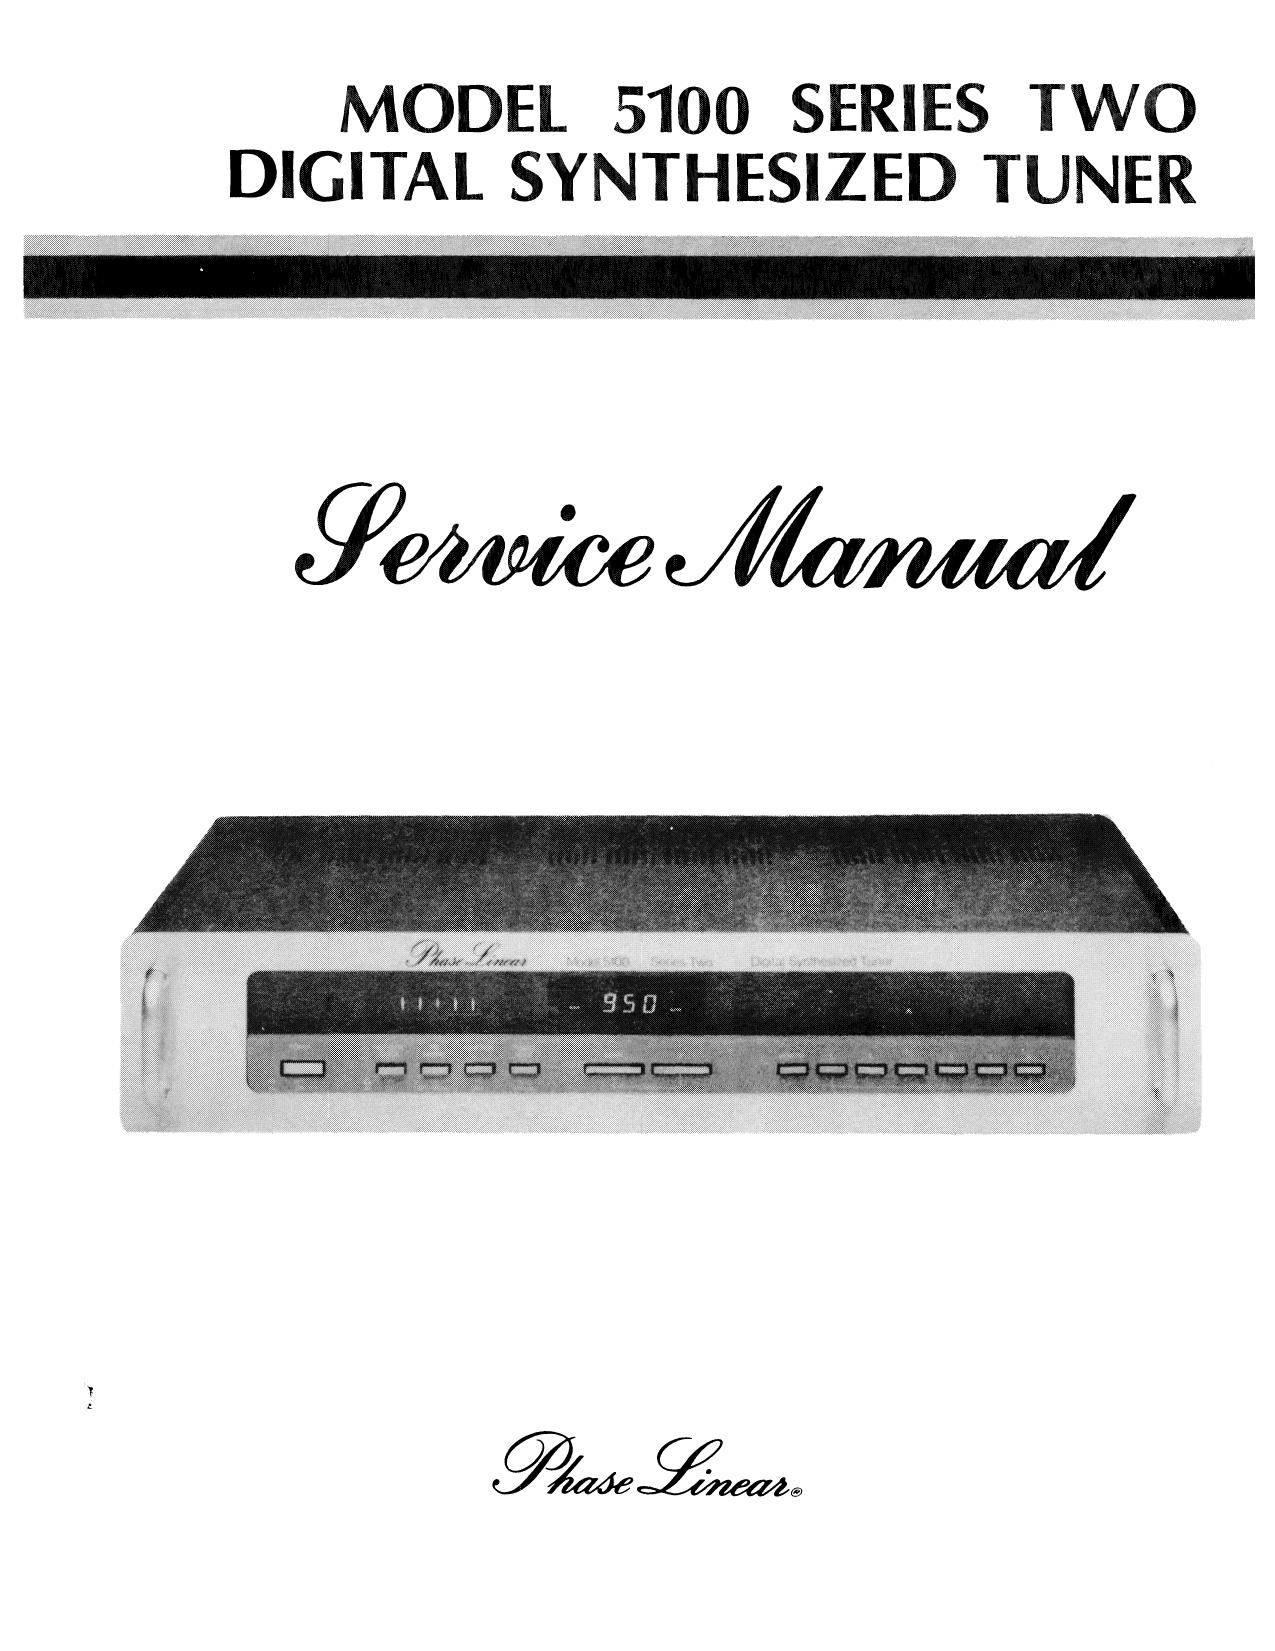 phase linear 5100 s2 service manual rh audioservicemanuals com phase linear 700 service manual phase linear 400 service manual